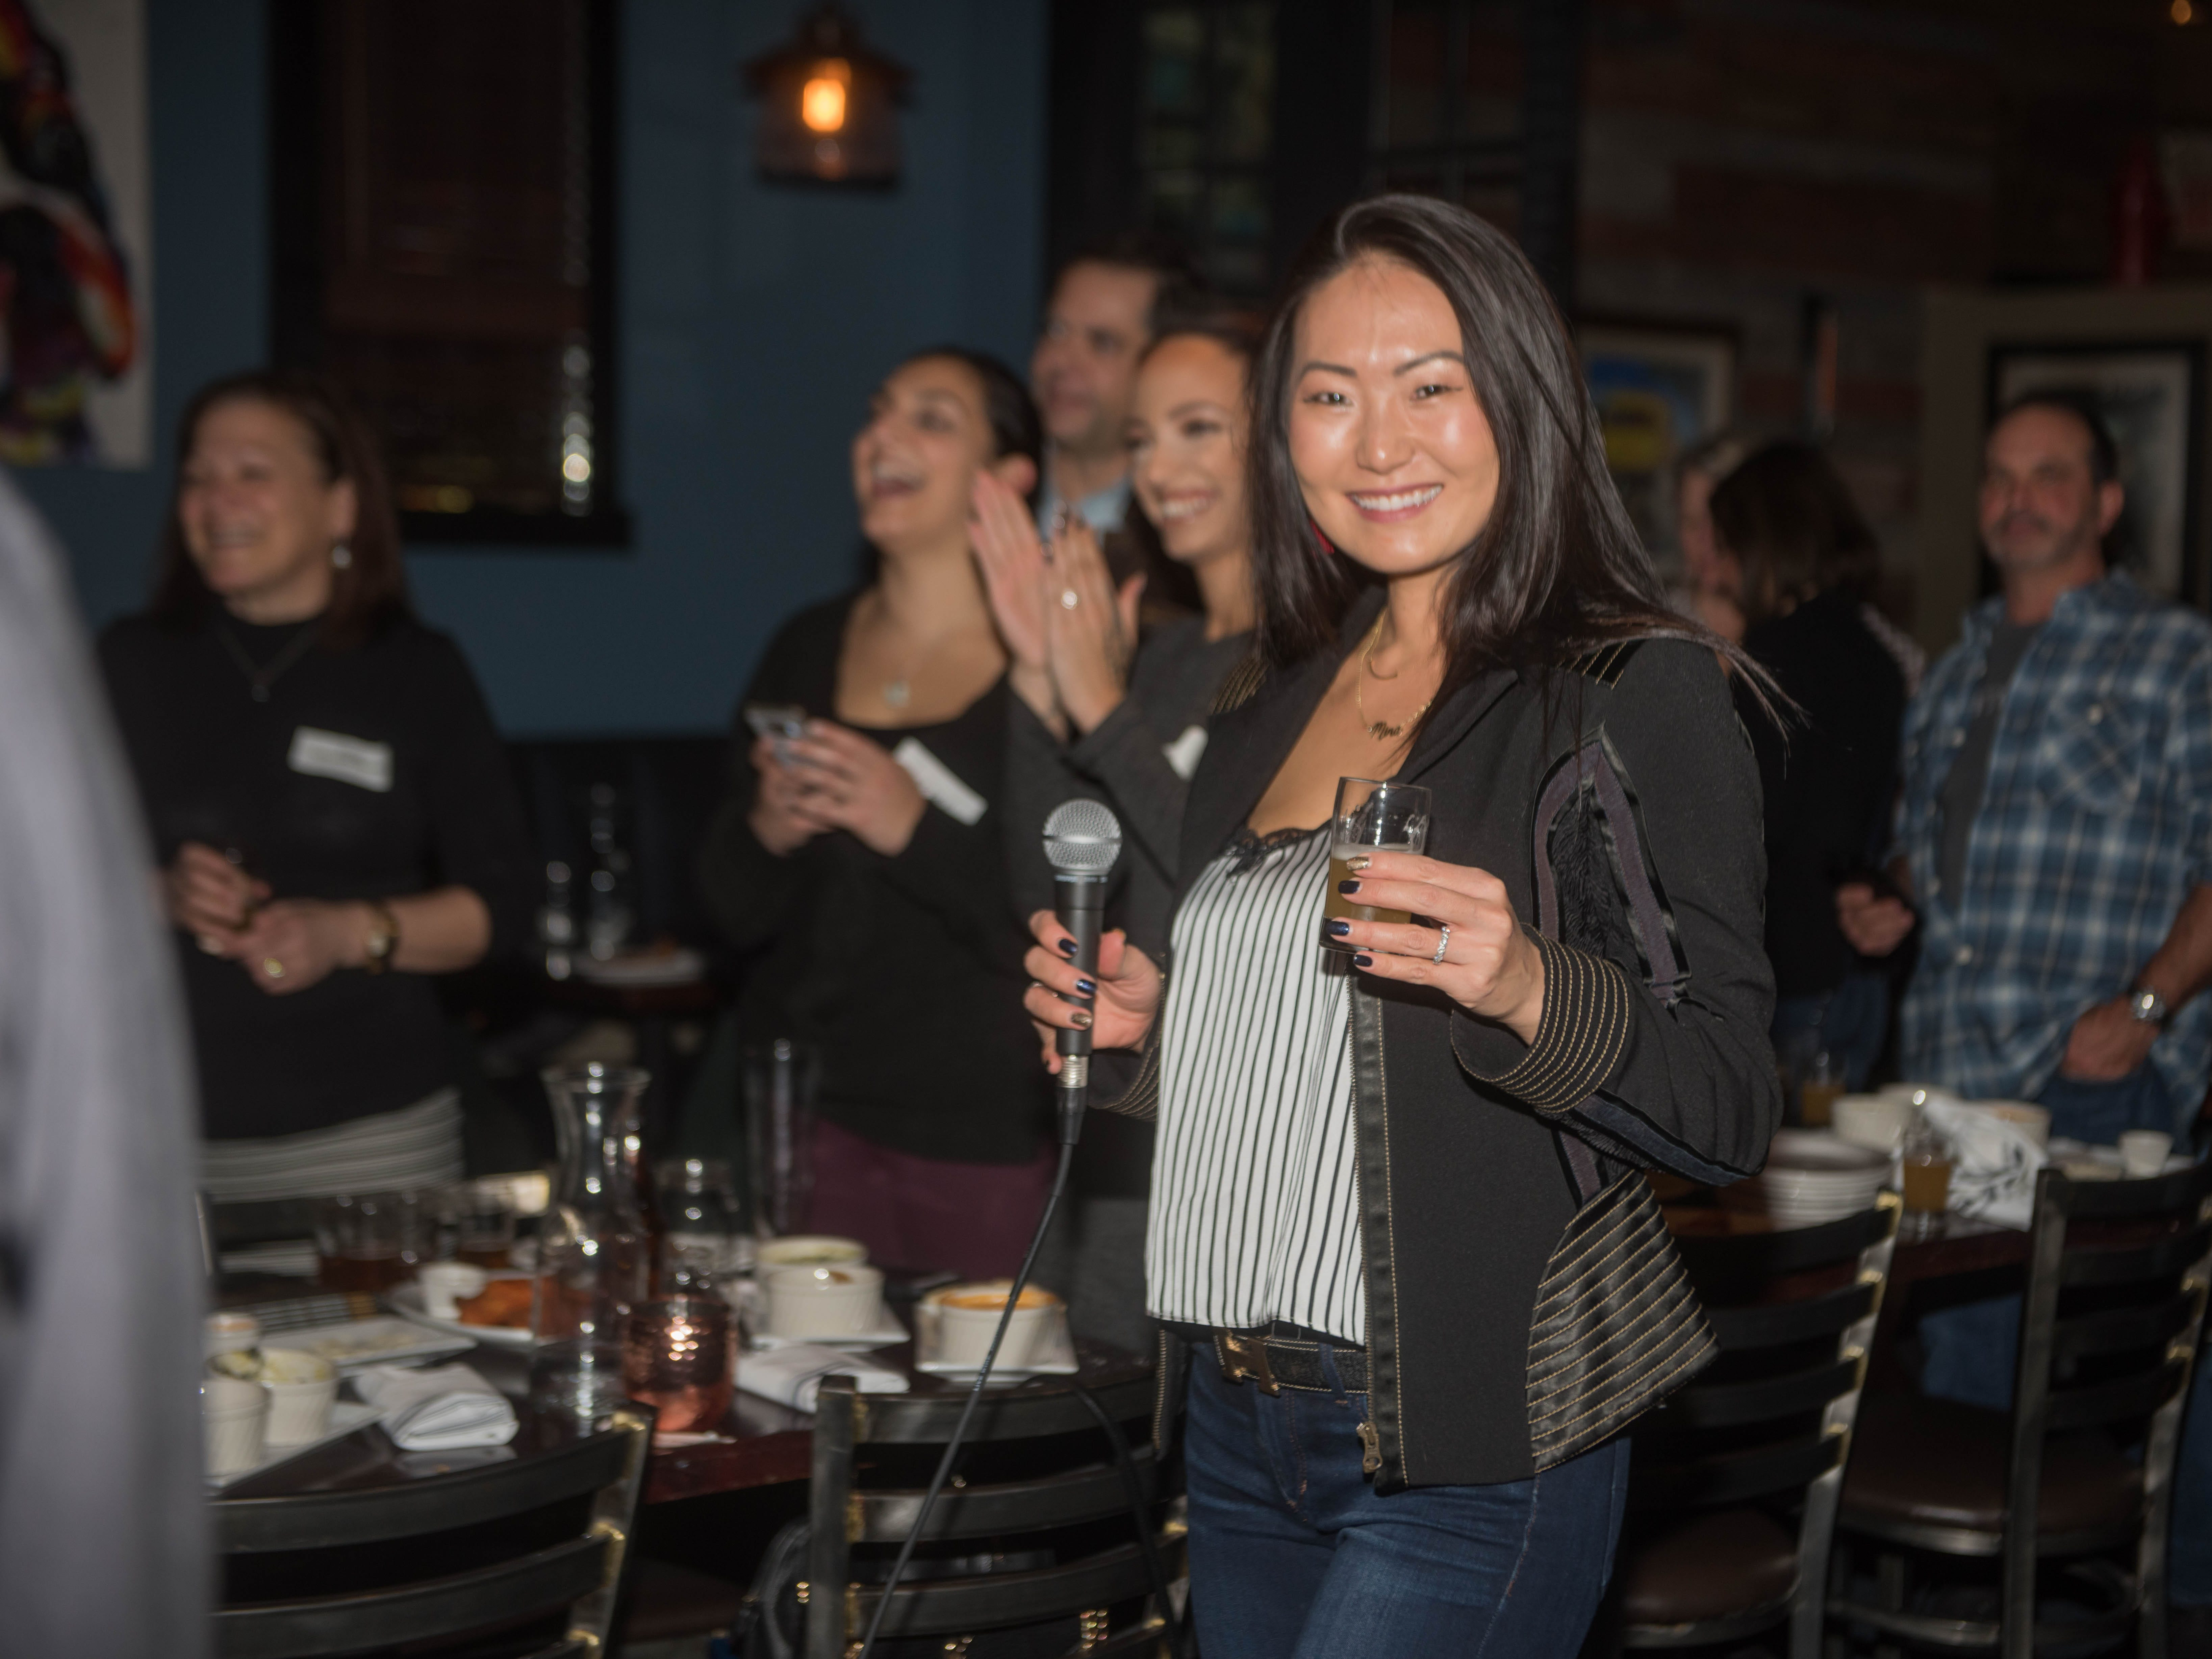 Mina Barany. (201) Magazine and NorthJersey.com held Taste Test Tuesday at he Dog and Cask in Rochelle Park with this month's cover model, Lauran Tuck and former cover model and former NY Giant Justin Tuck. 11/13/2018